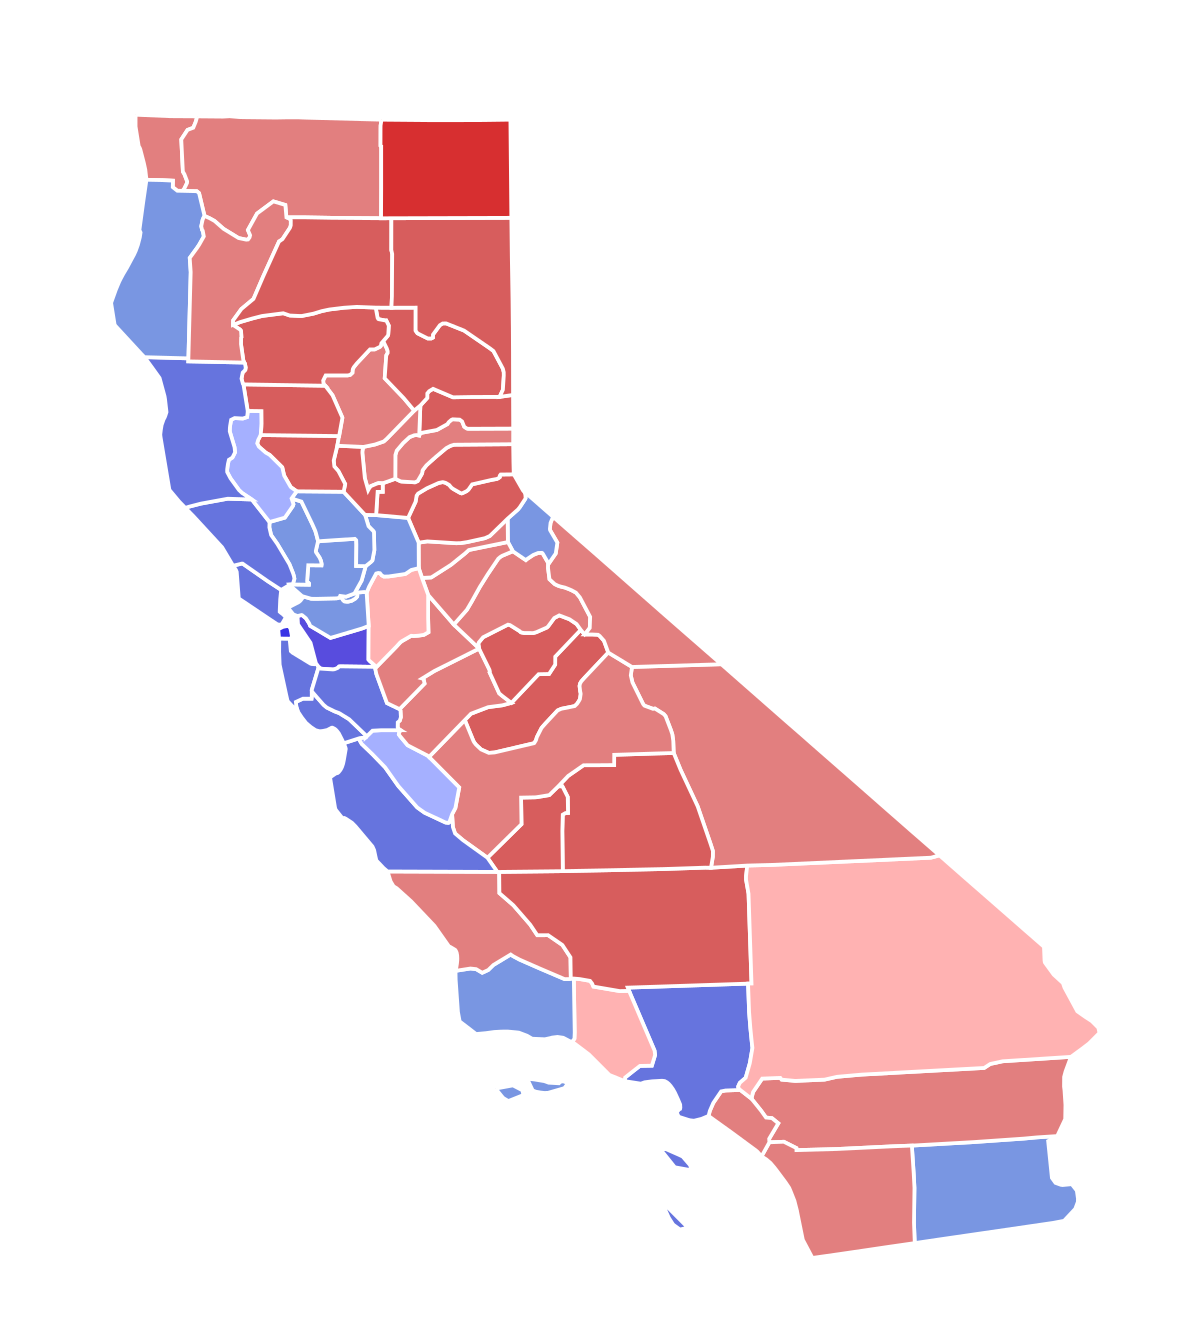 united states senate. Transparent calif red picture stock